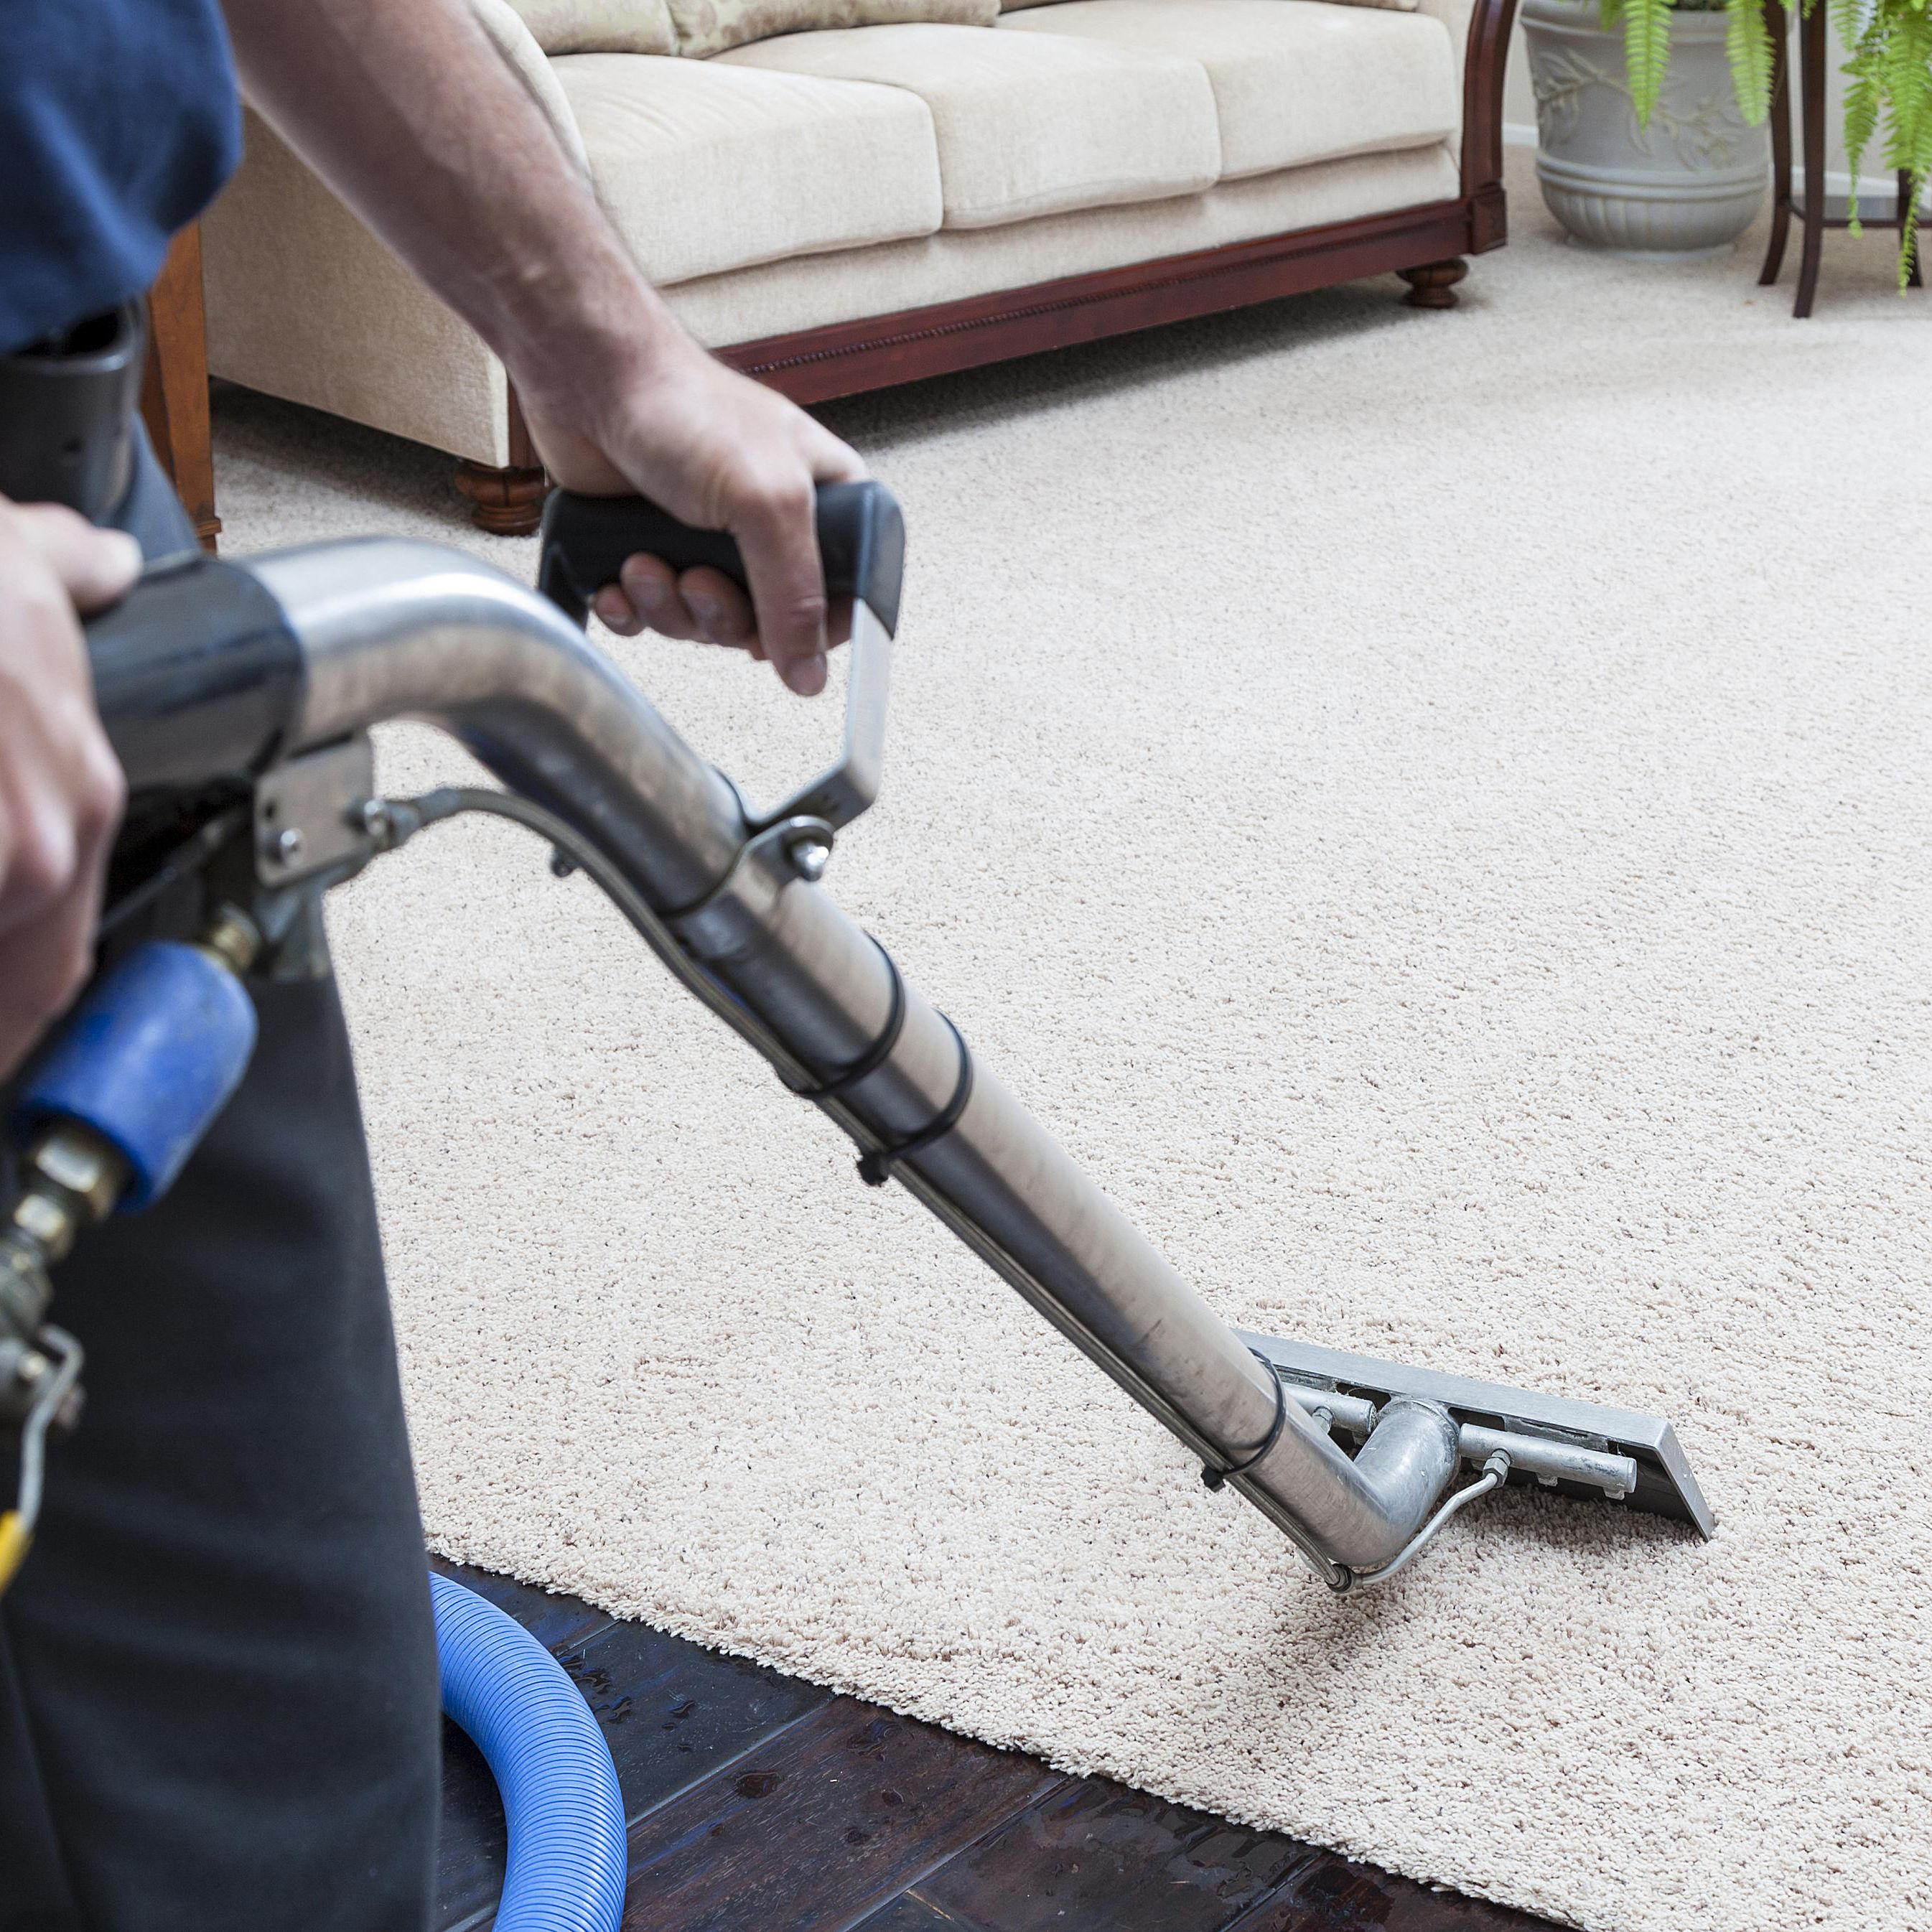 Carpet Steam Cleaning Professional Vs Diy